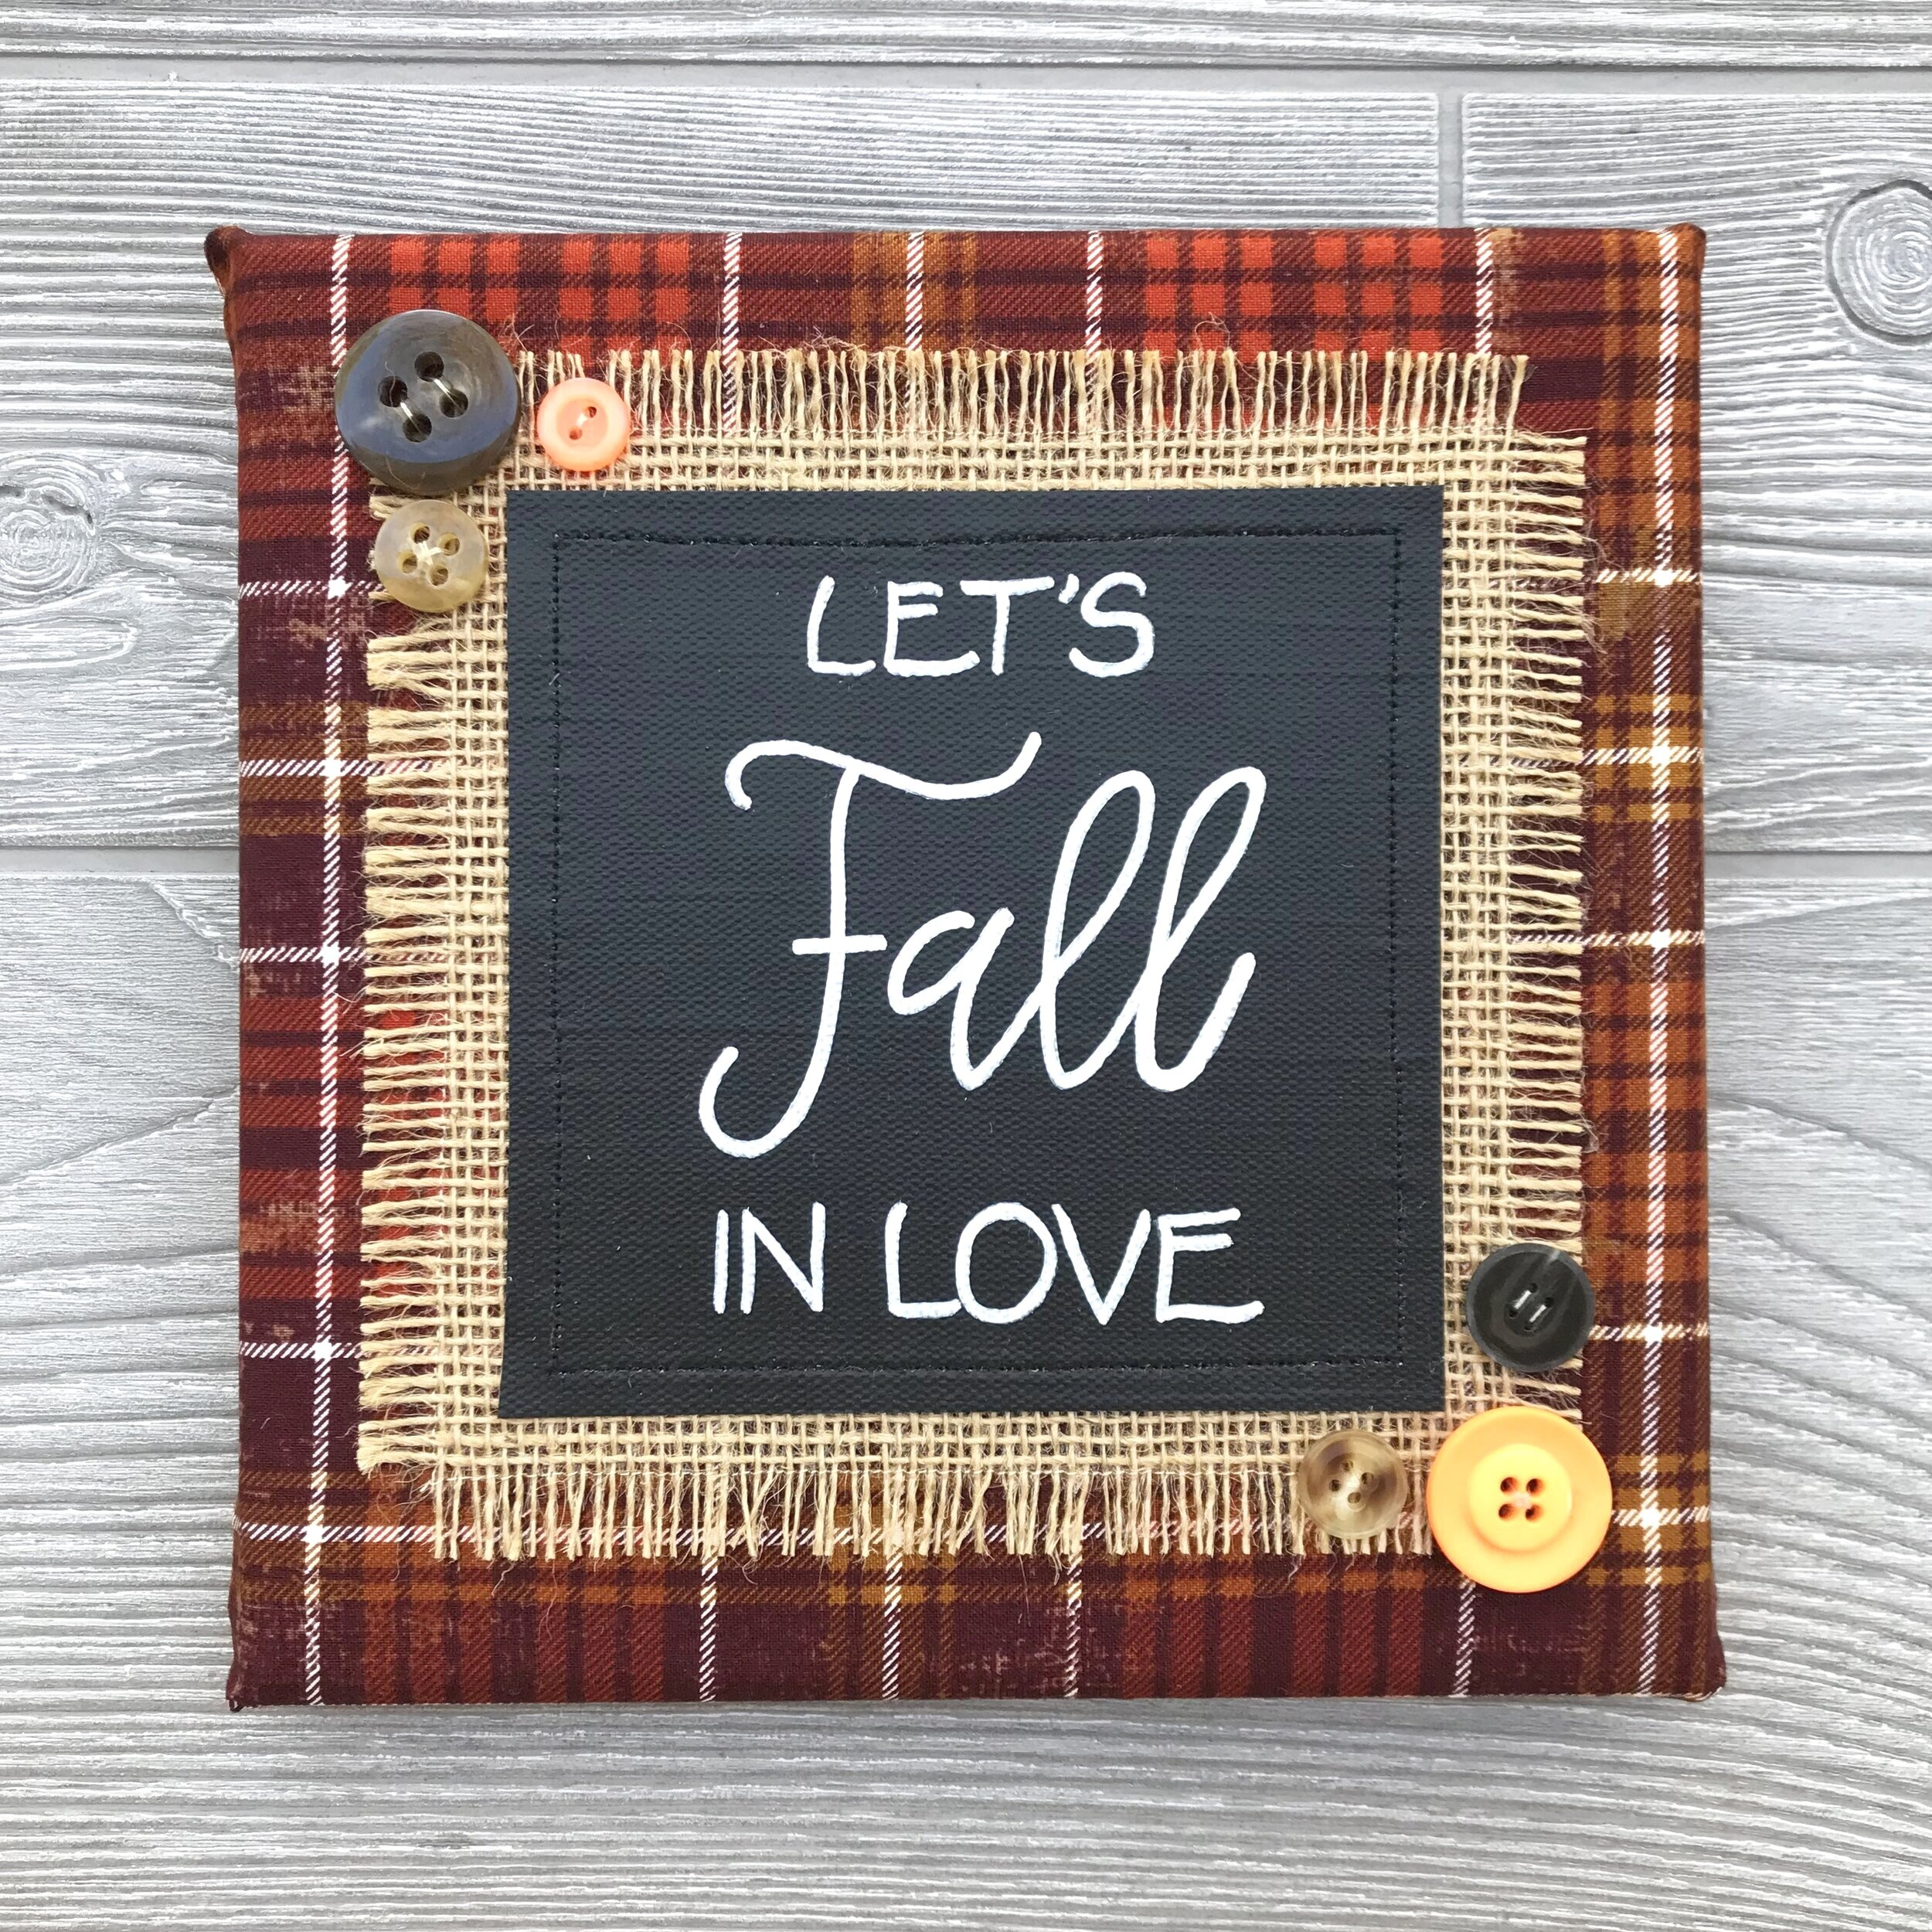 """Let's Fall in Love - Family time at the pumpkin patch...cider donuts and warm cider...cozy sweaters and crisp leaves...there's so much to love at this time of year! Celebrate the season with this handmade artwork—the perfect accent for your harvest home8""""x8"""" Handmade Literary ArtworkElements: hand-painted and hand-lettered canvas, colorful burlap, patterned fabric, coordinating buttons, wood frame, claw hangerPrice: $25 (includes US-based shipping)"""